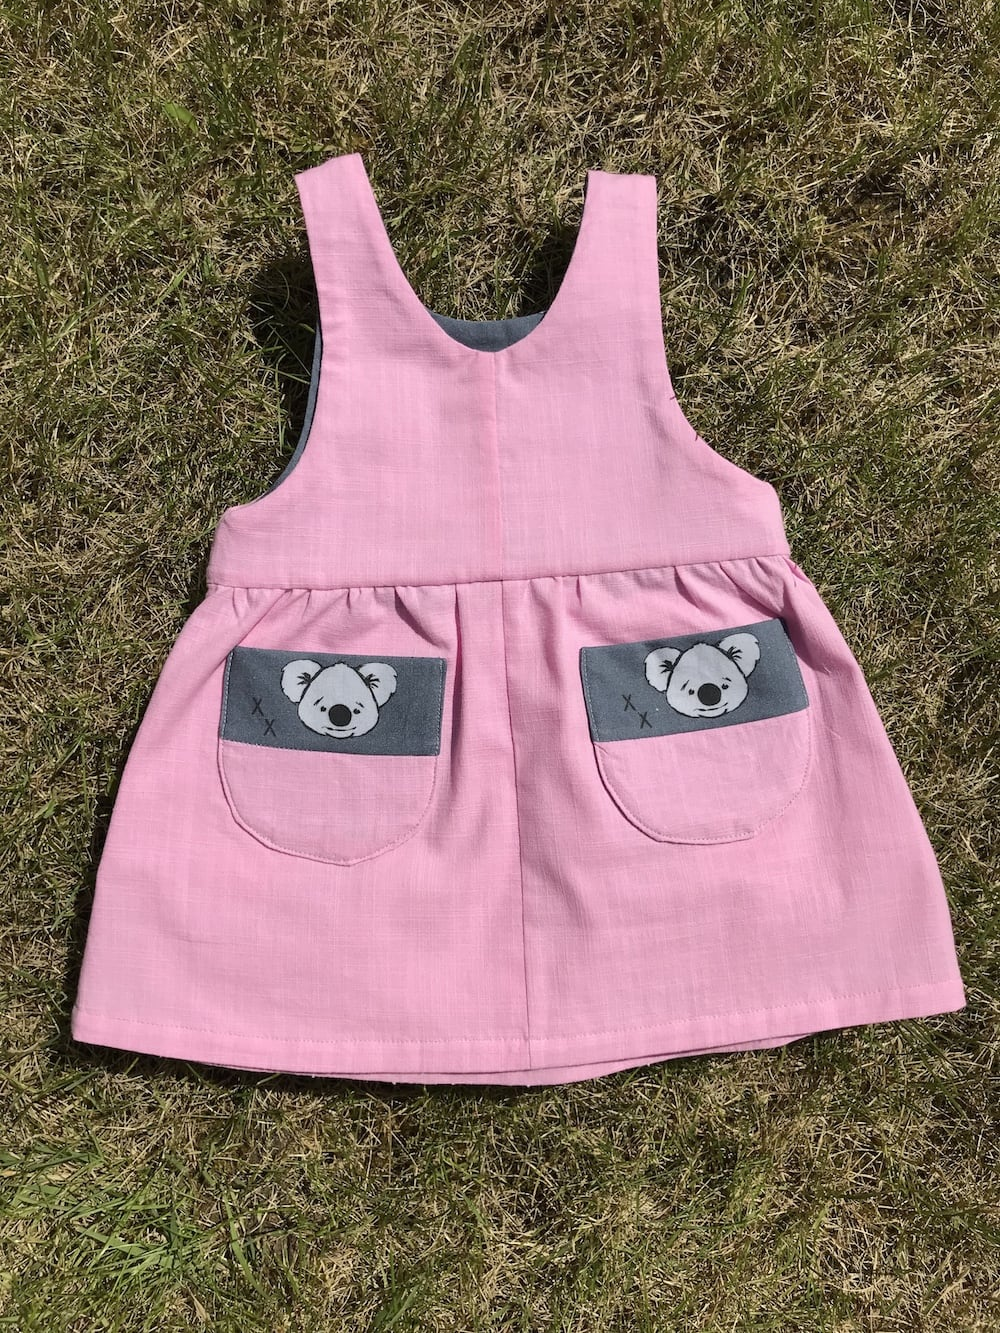 Puperita Lil Critters Pinafore Dress in pink .jpg